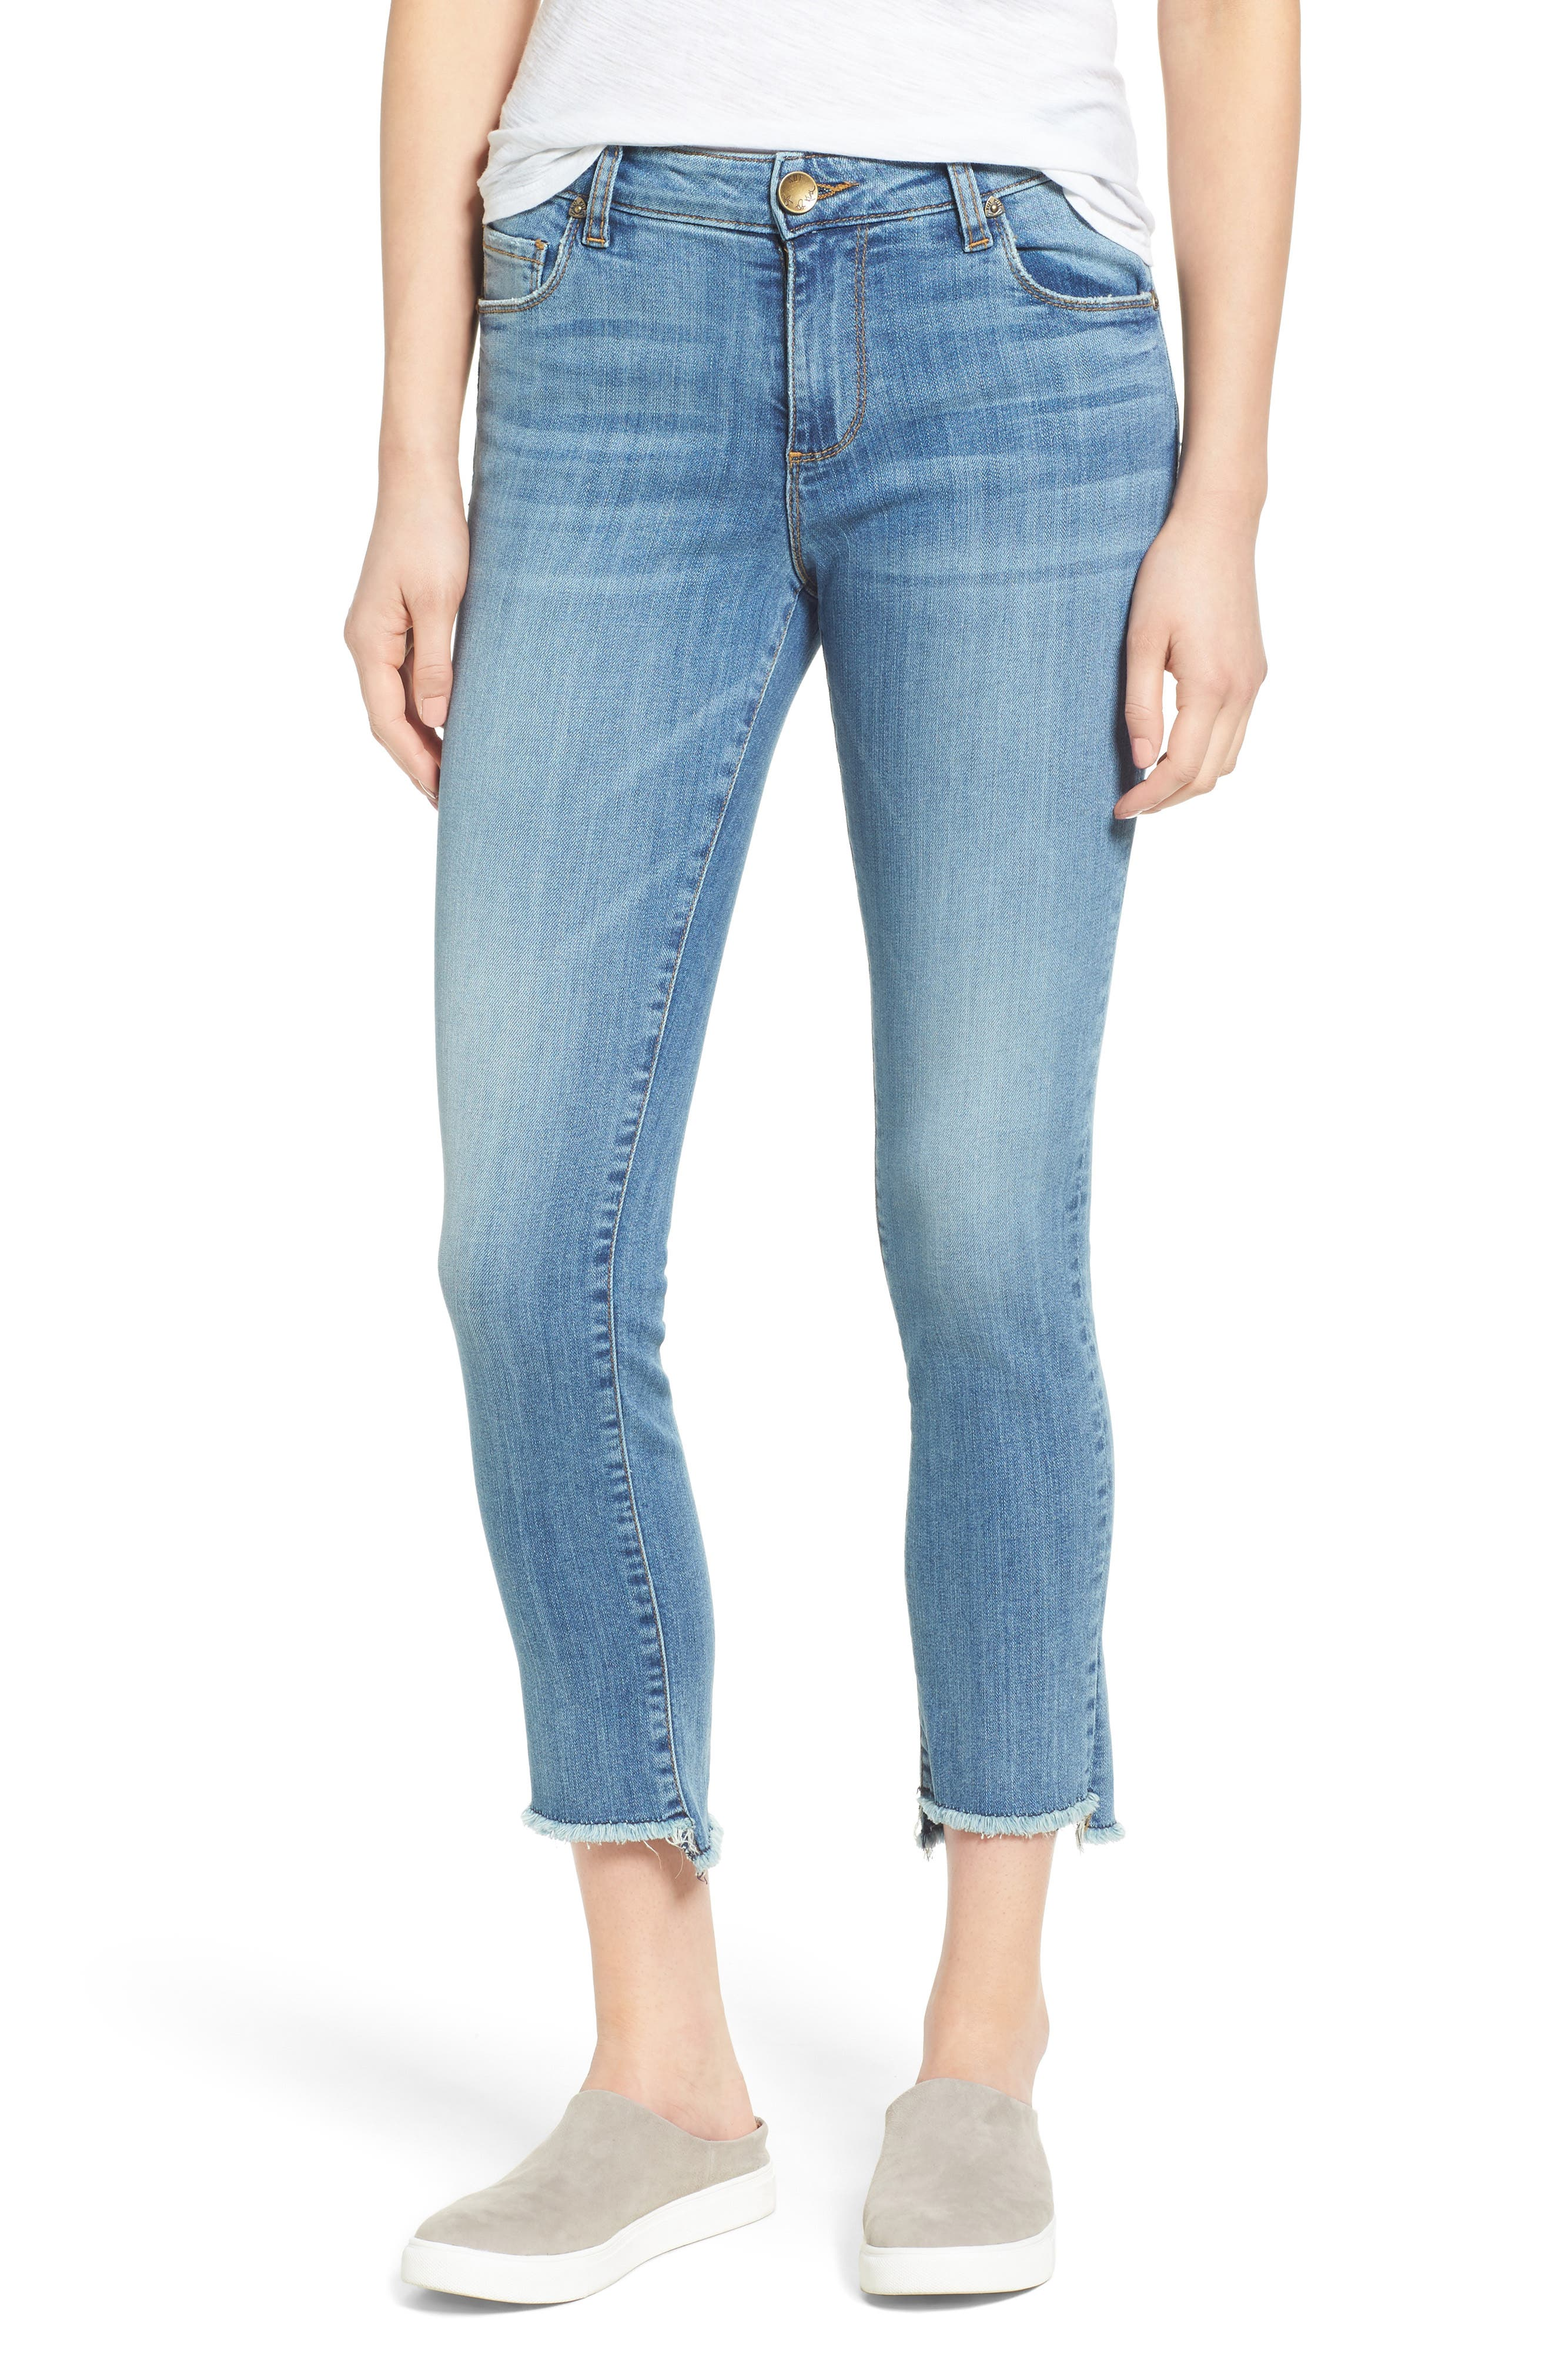 Main Image - KUT from the Kloth Reese Frayed Straight Leg Ankle Jeans (Participation)